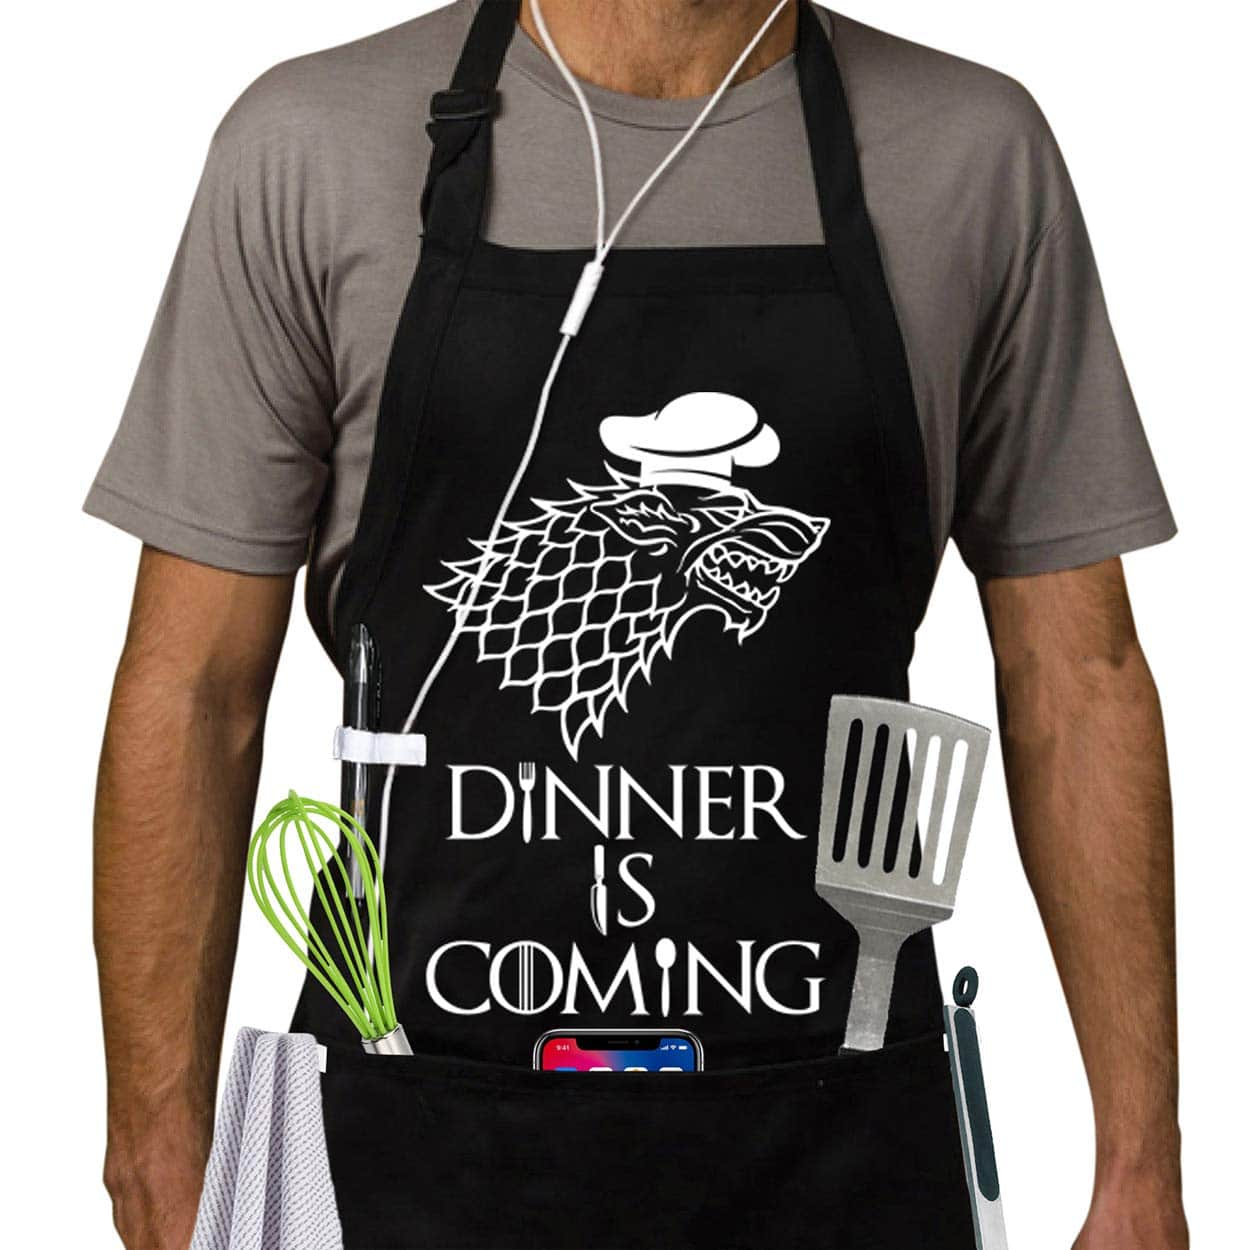 dinner is coming apron Game of Thrones gift